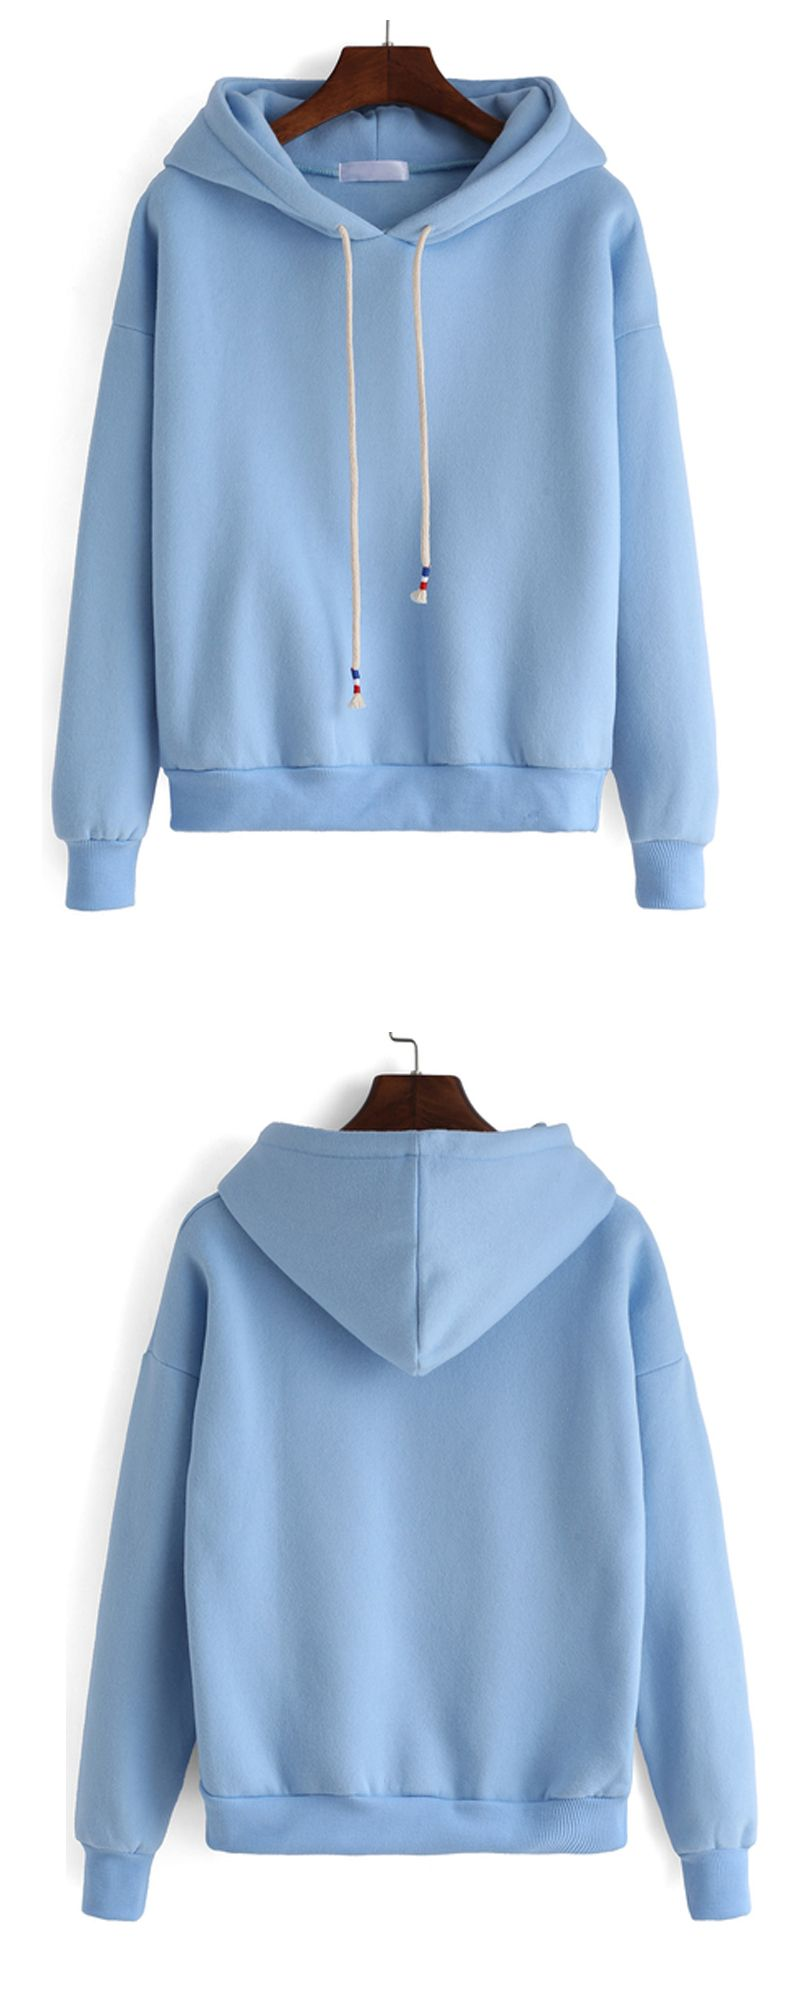 fragrance twist To meditation  Plain hooded drawstring loose sweatshirt in blue.That's so adorable &  versatile !Click for same pink sweatshirt and more. | Clothes, Fashion,  Trendy sweatshirt